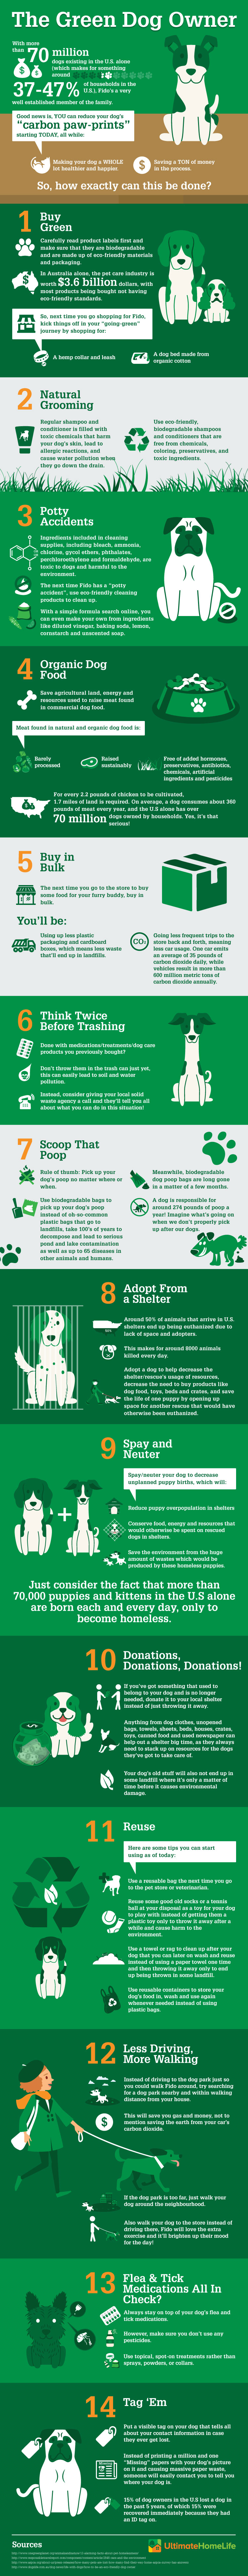 Reducing your Dogs Carbon Foot Print